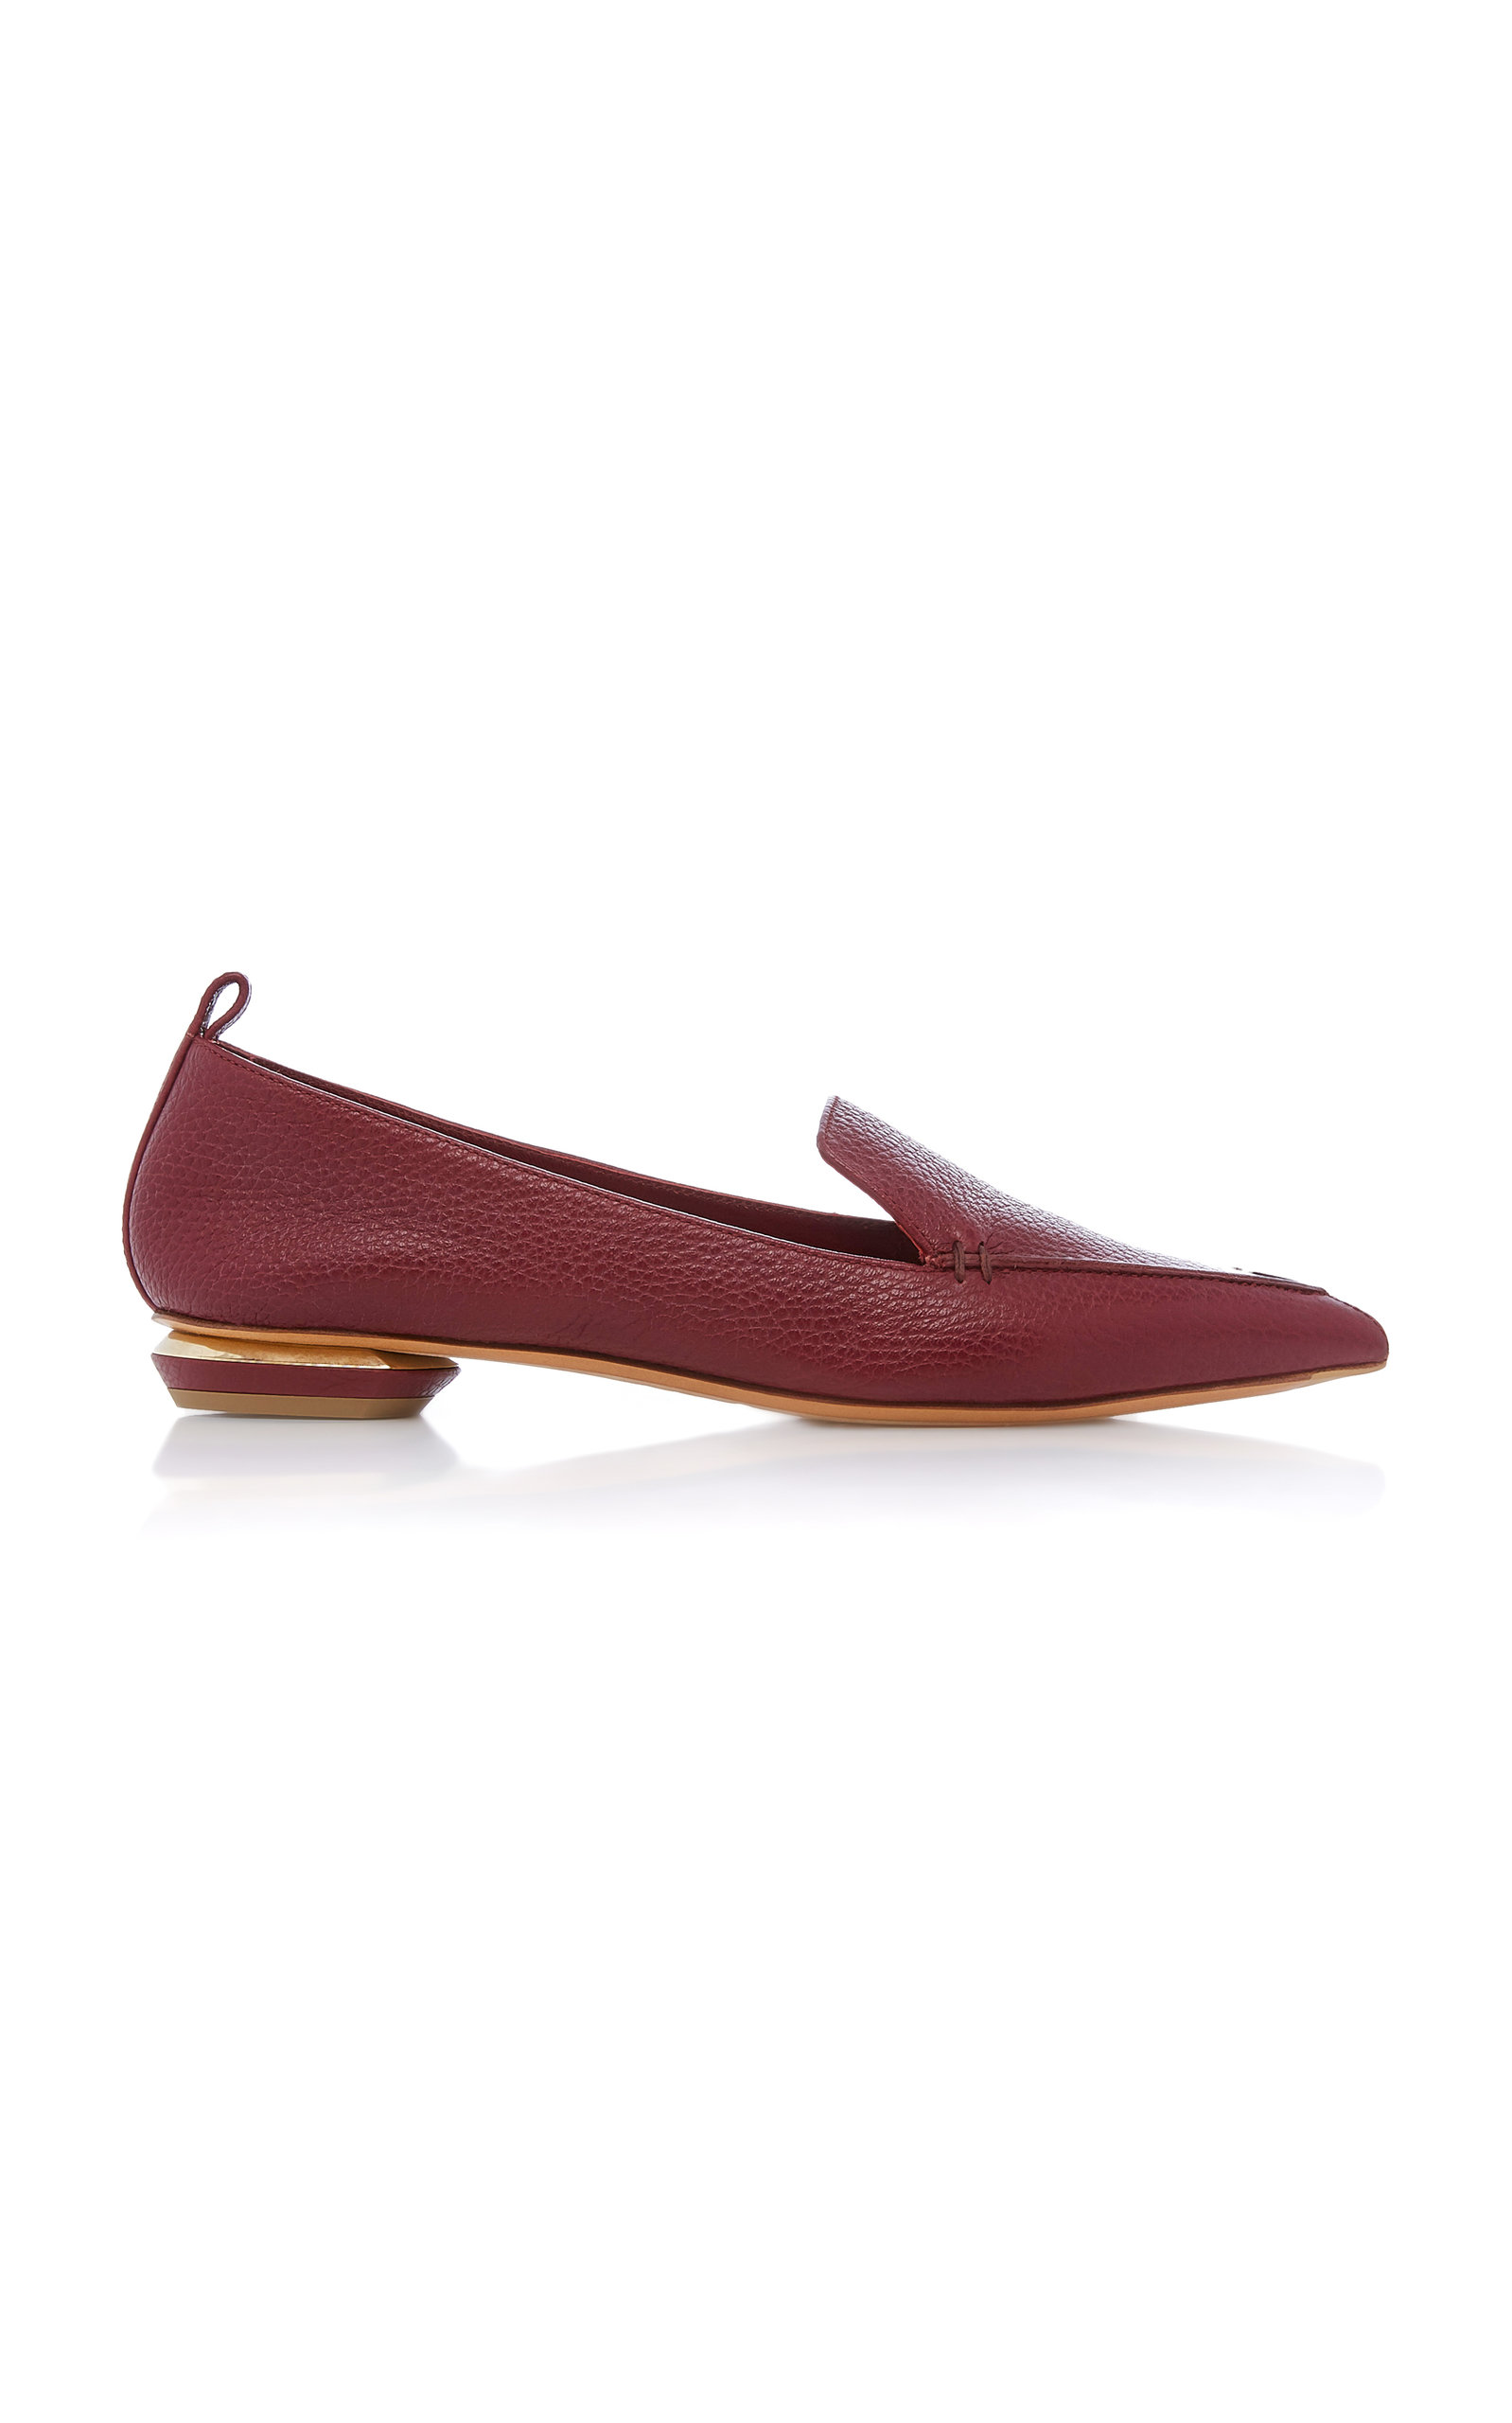 Beya Leather Loafers - Burgundy Size 8.5 in Red